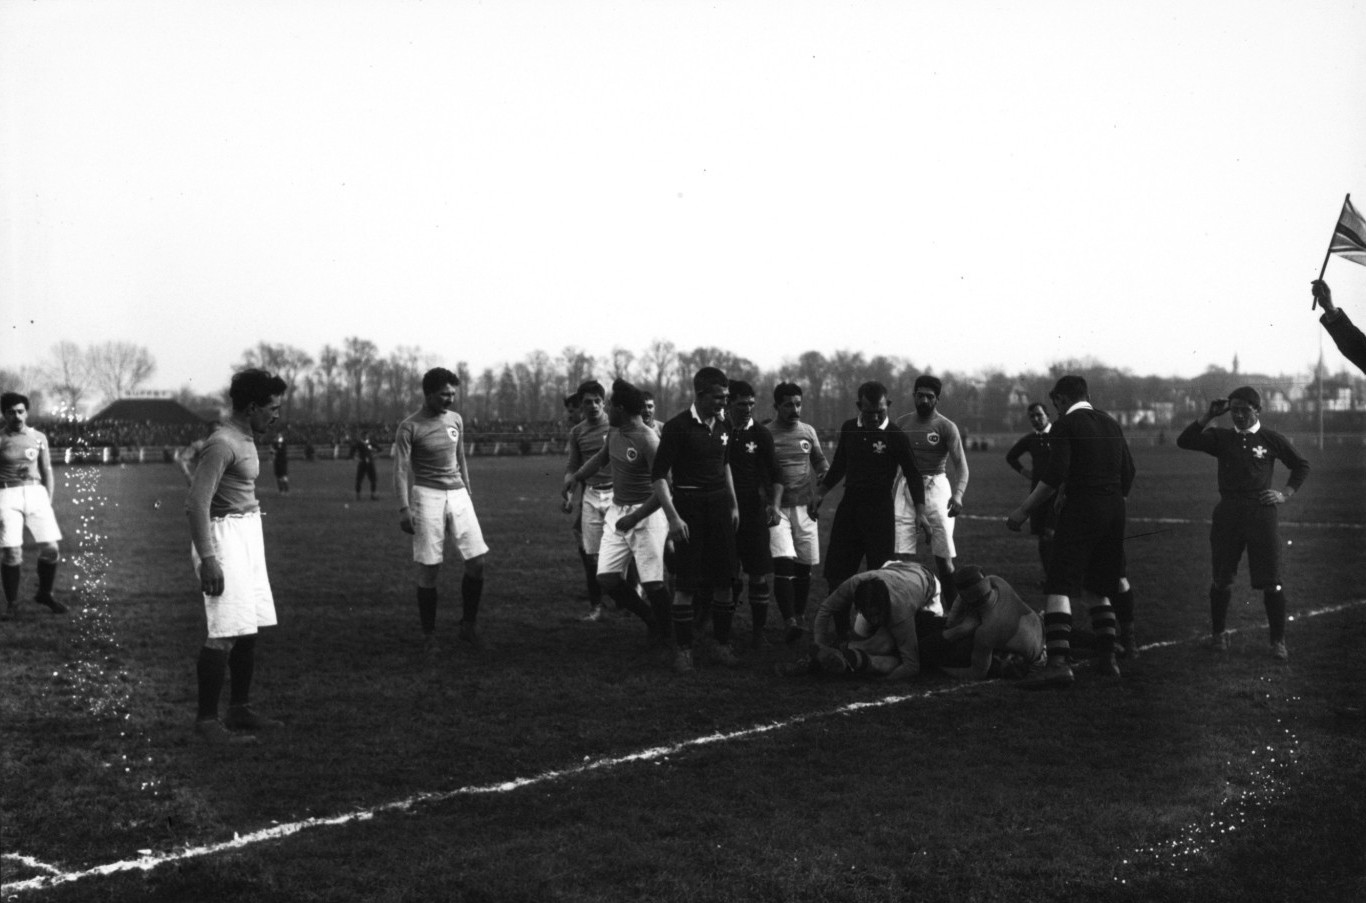 1909 France v Wales - Rugby Memorabilia Society (match photos) (1)